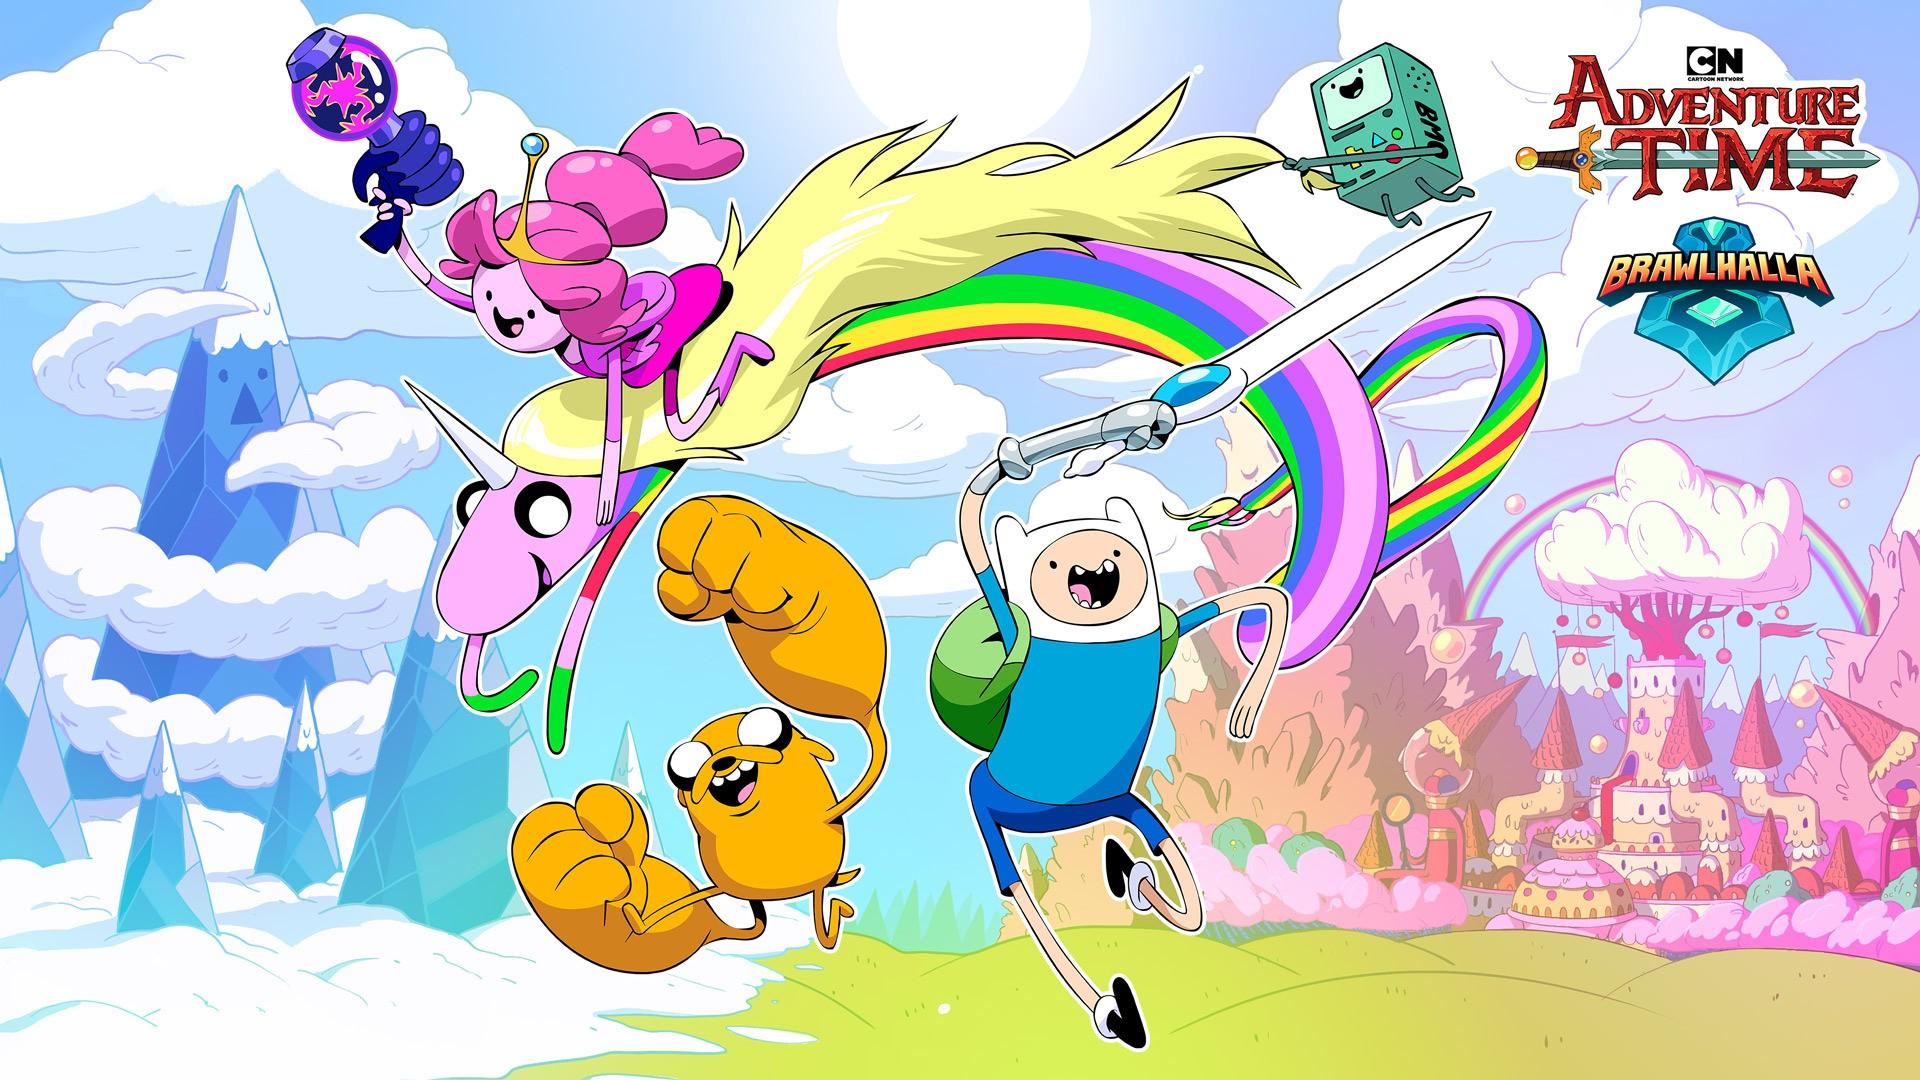 Brawlhalla Collaborates With Adventure Time Adds Finn Jake And